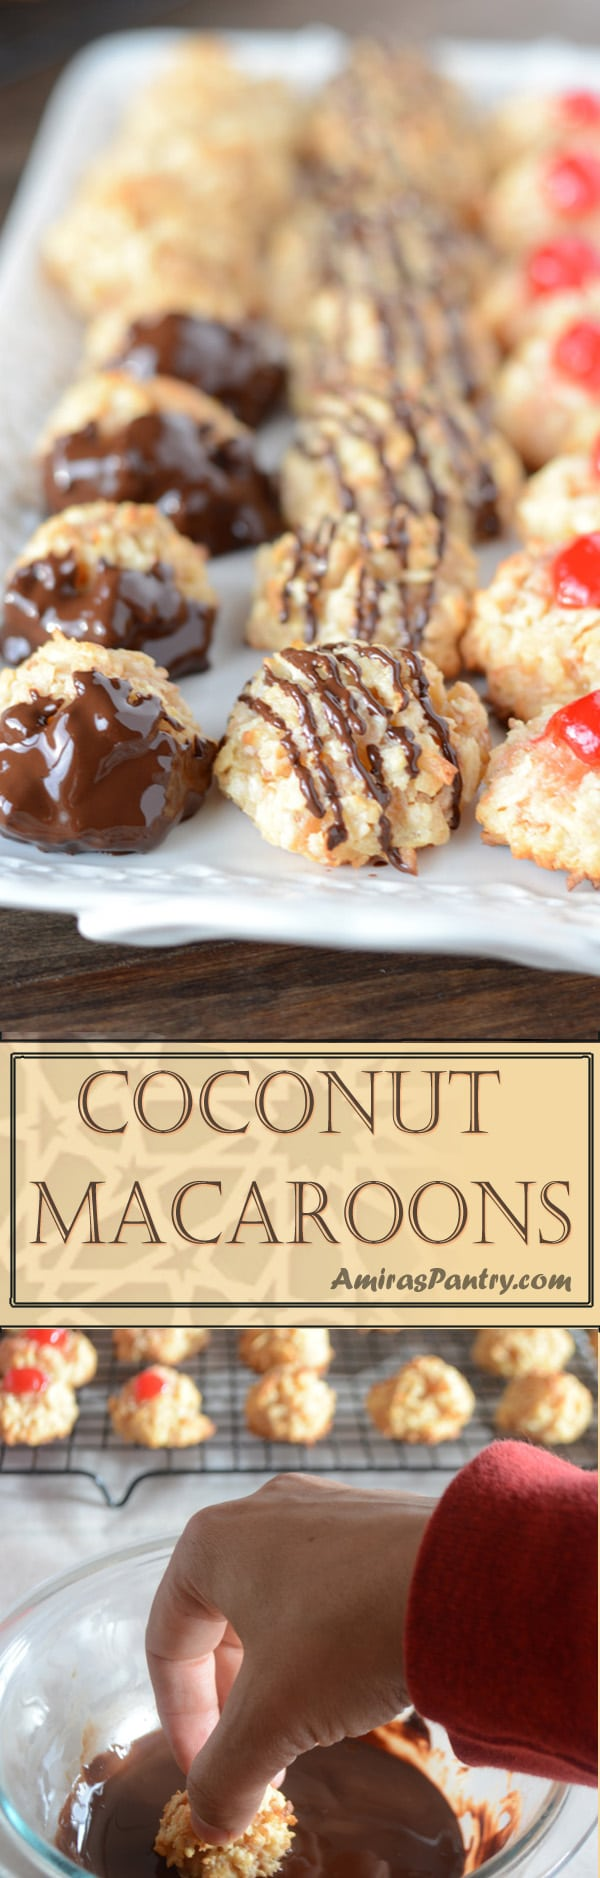 An infograph of Coconut Macaroon recipe